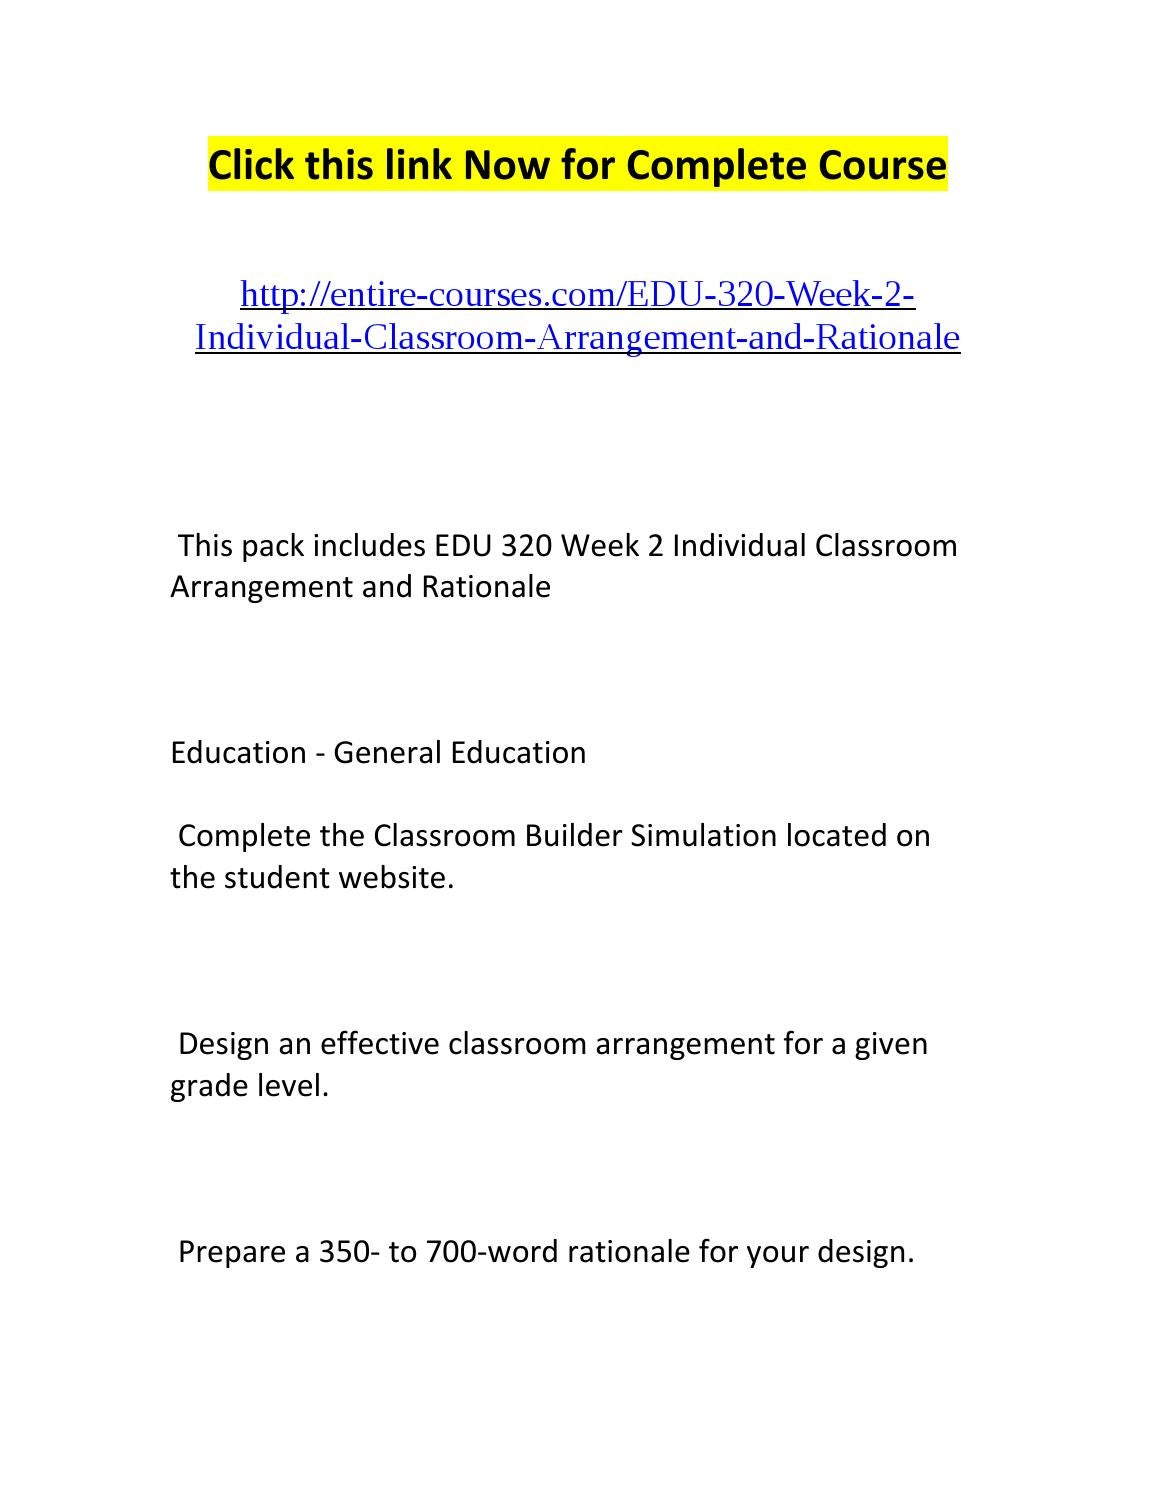 Classroom Design Rationale : Edu week individual classroom arrangement and